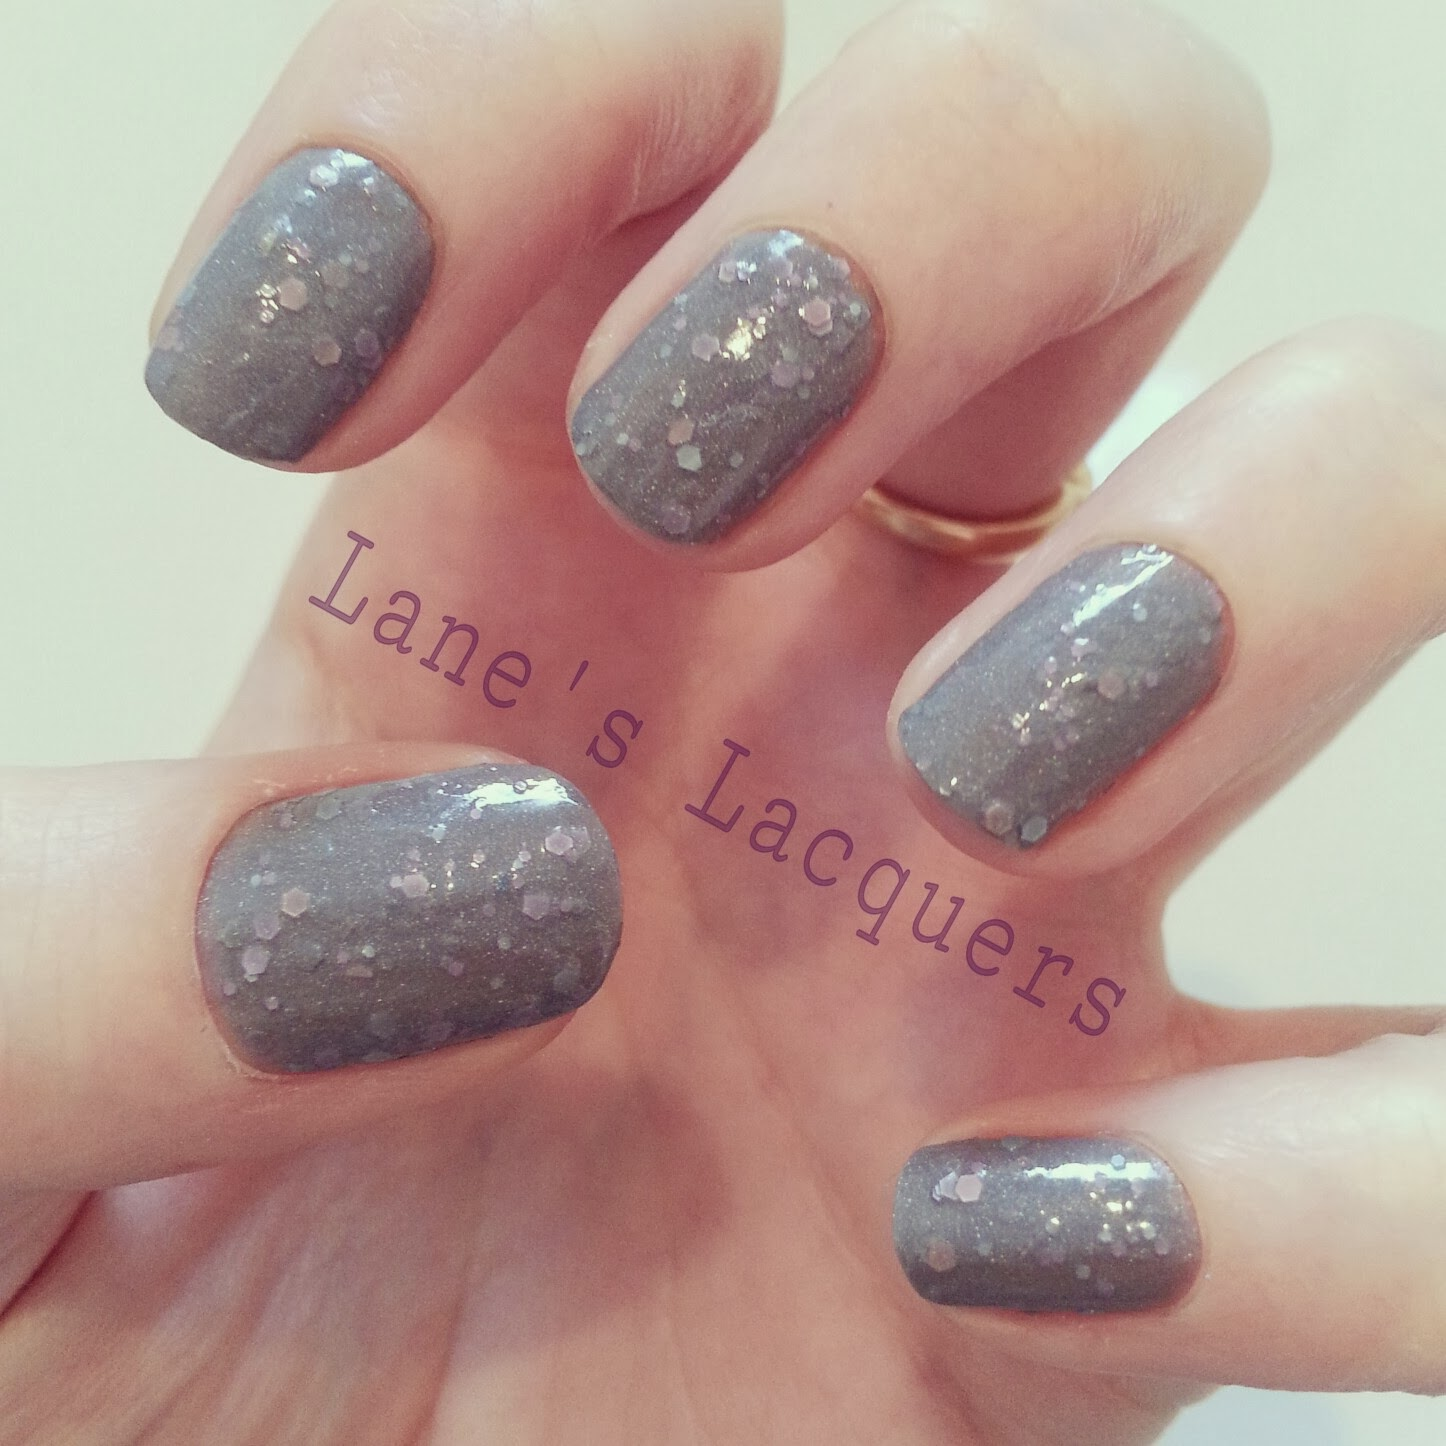 magic-goose-i-wished-for-a-castle-swatch-manicure.jpg